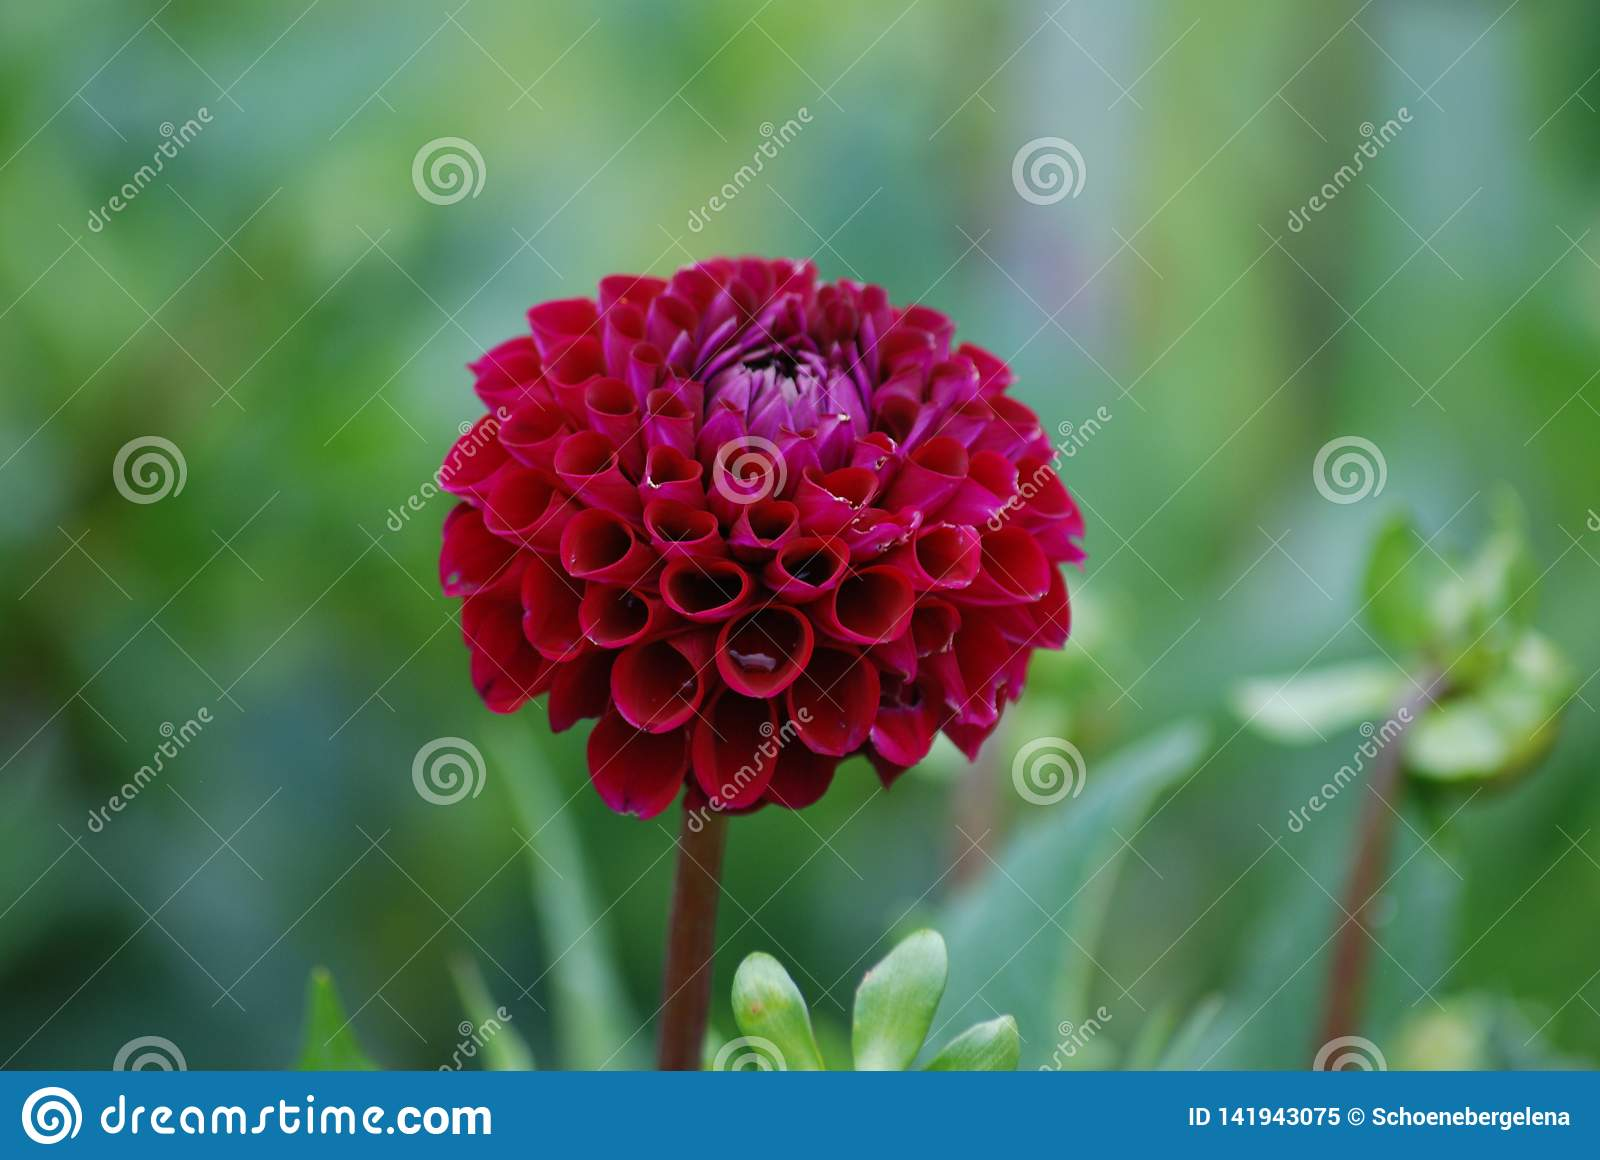 Stand out from the Crowd - Diva - Wine Colored Dahlia Blossom